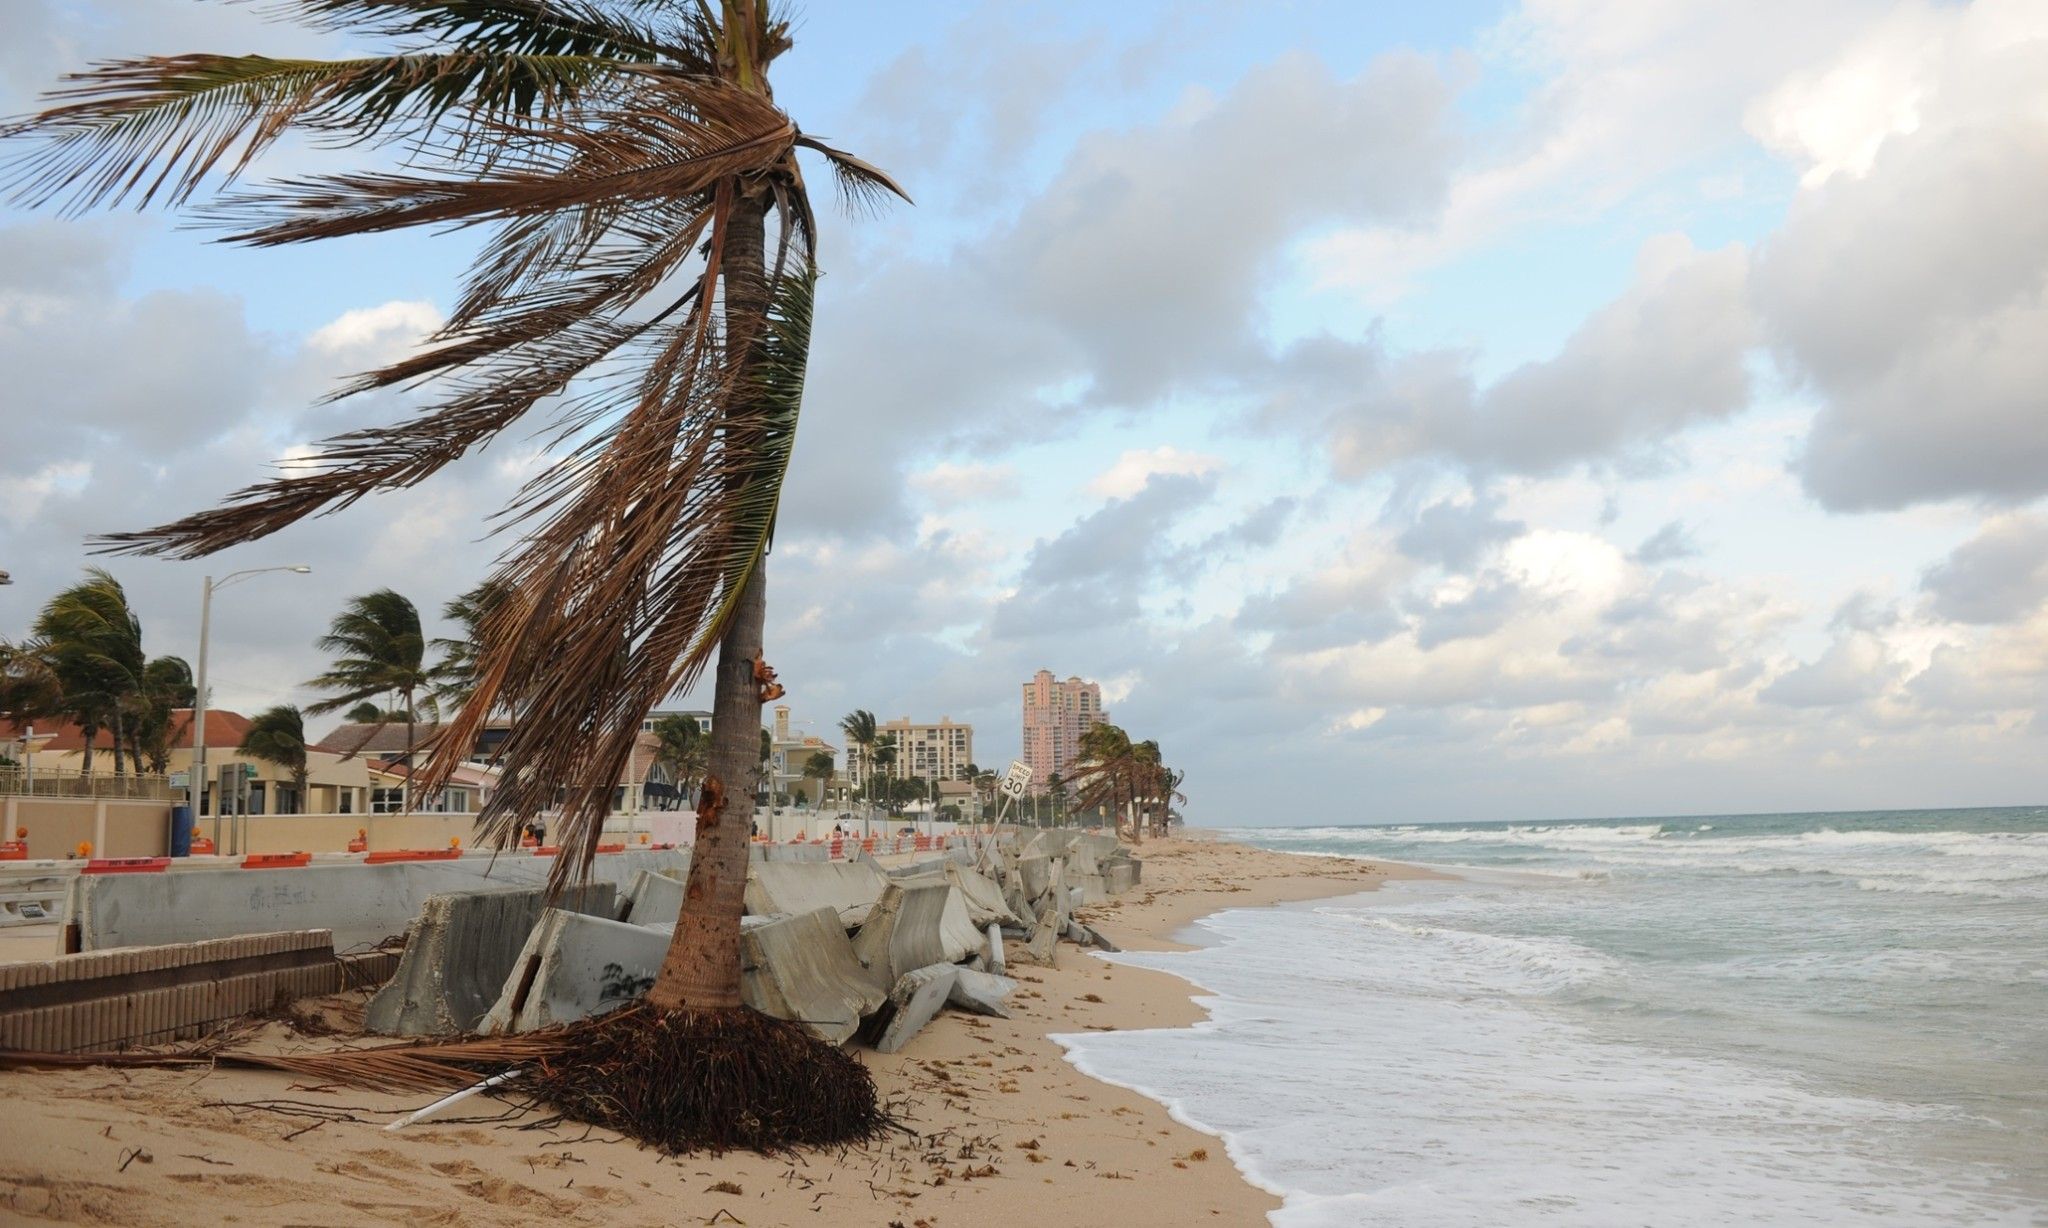 World's beaches being washed away due to coastal development